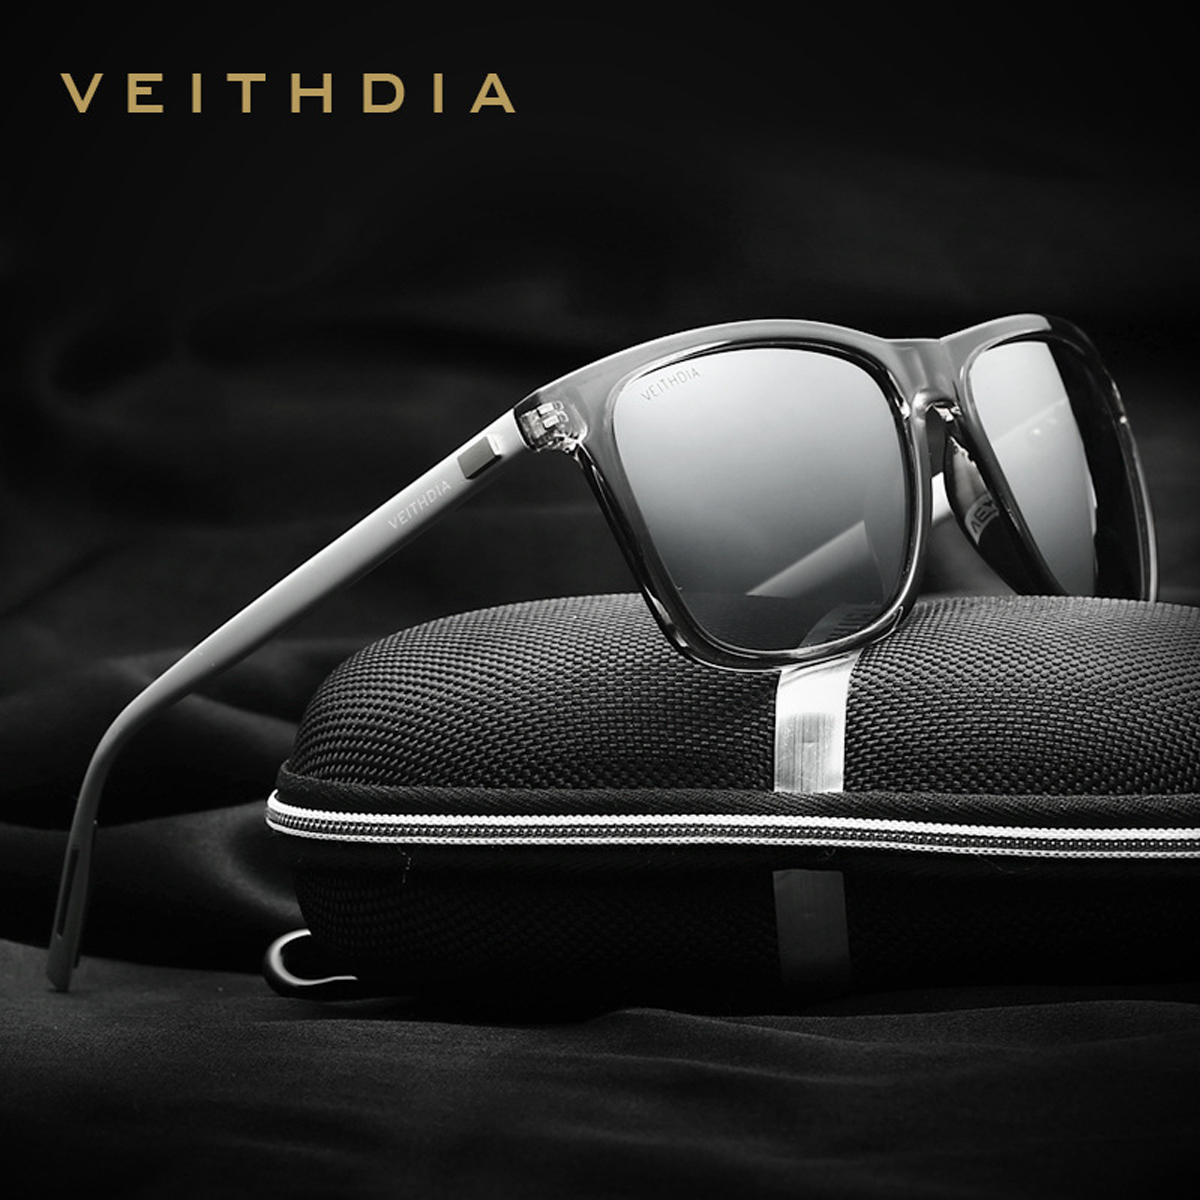 V6108 VEITHDIA Brand Unisex Retro Aluminum TR90 Sunglasses Polarized Lens Vintage Eyewear Accessories Sun Glasses For